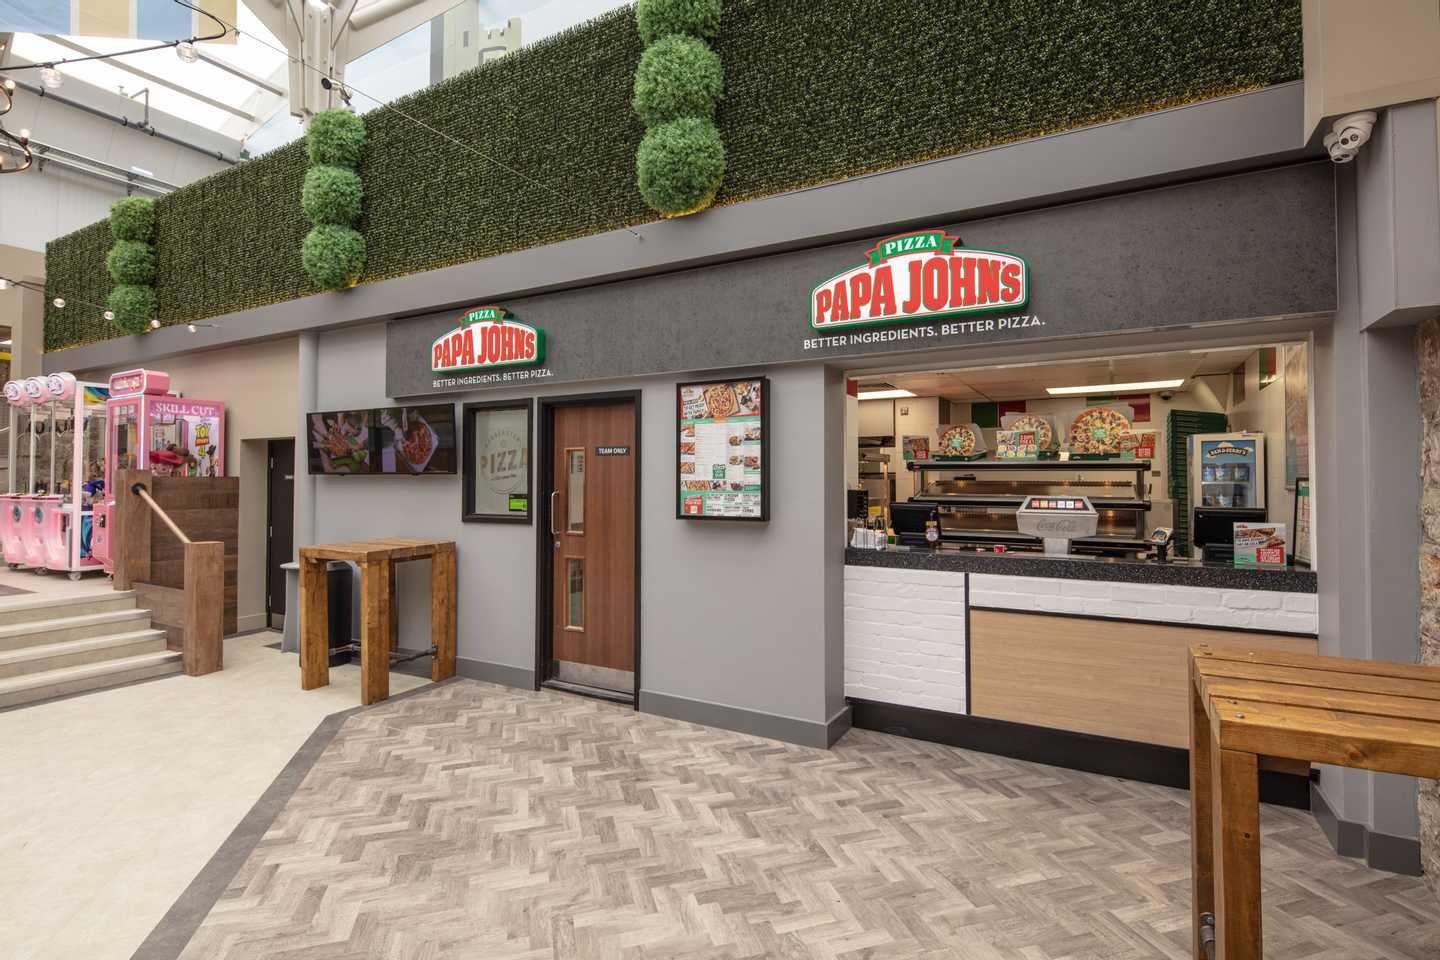 Refurbished Papa John's Pizza